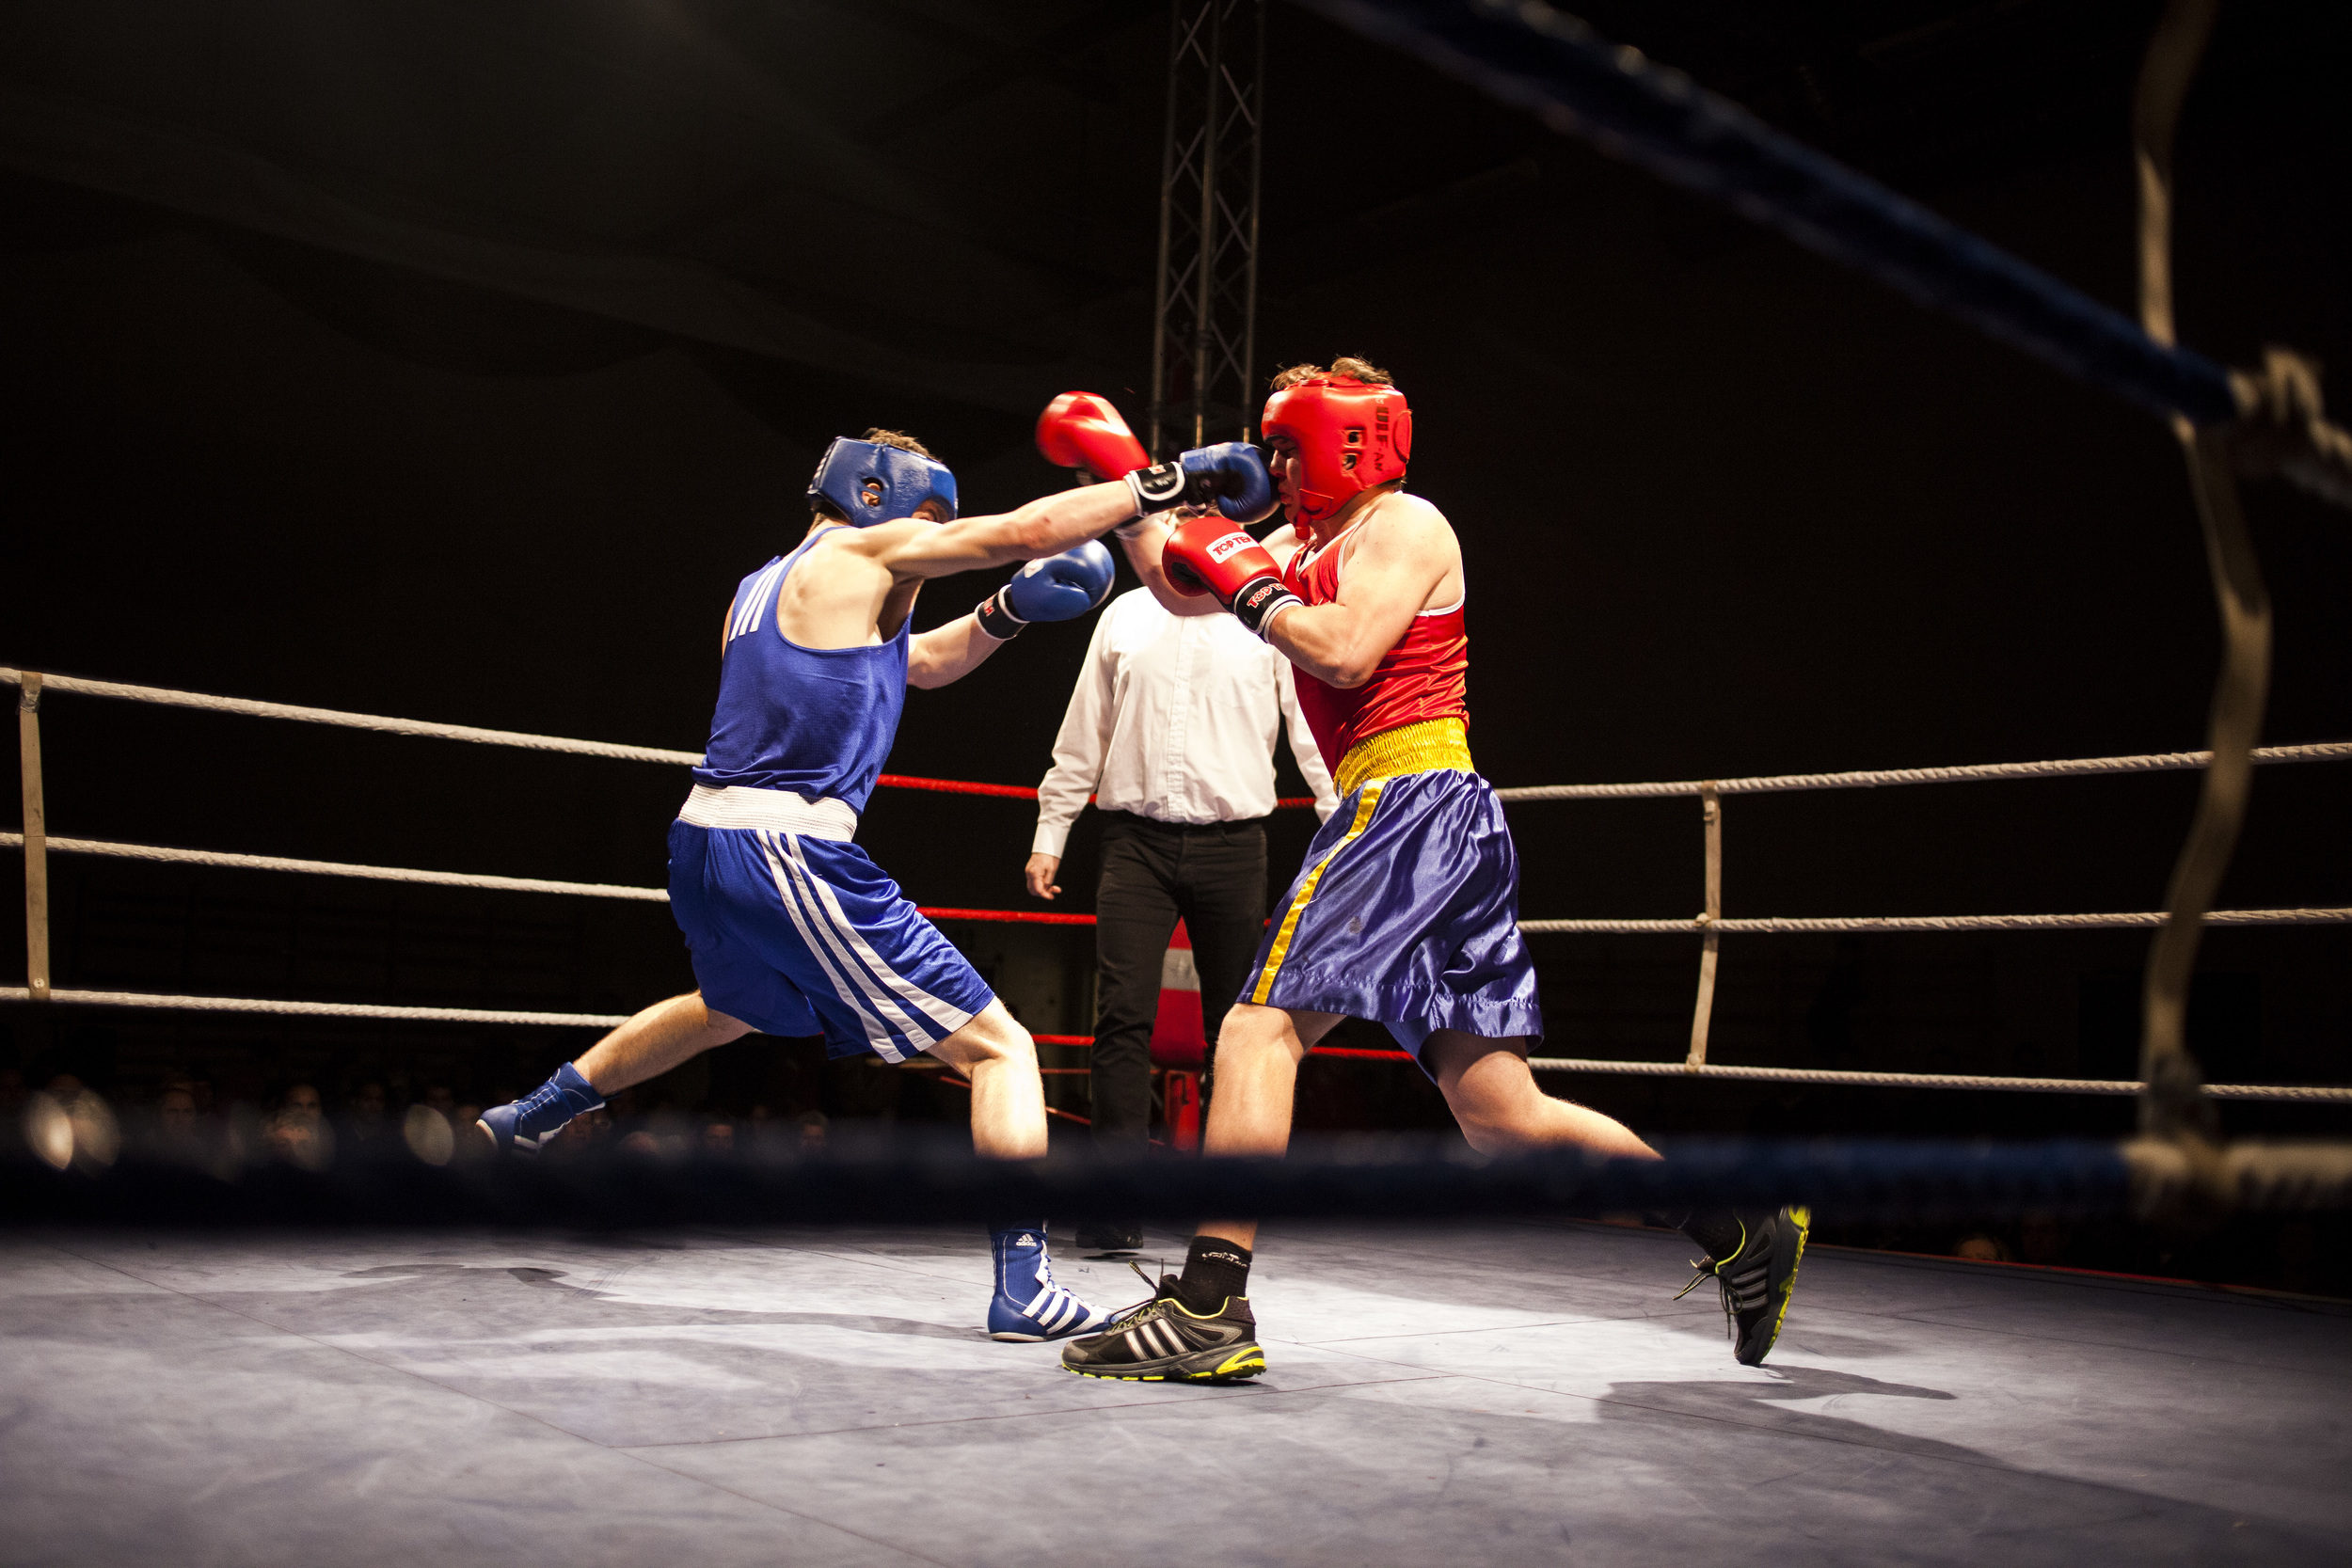 The future for Norwegian boxers is still uncertain. Surkho (in blue) won several championships in 2014. As his talent keep growing, his future as a boxer still relies on change of Norwegian laws.